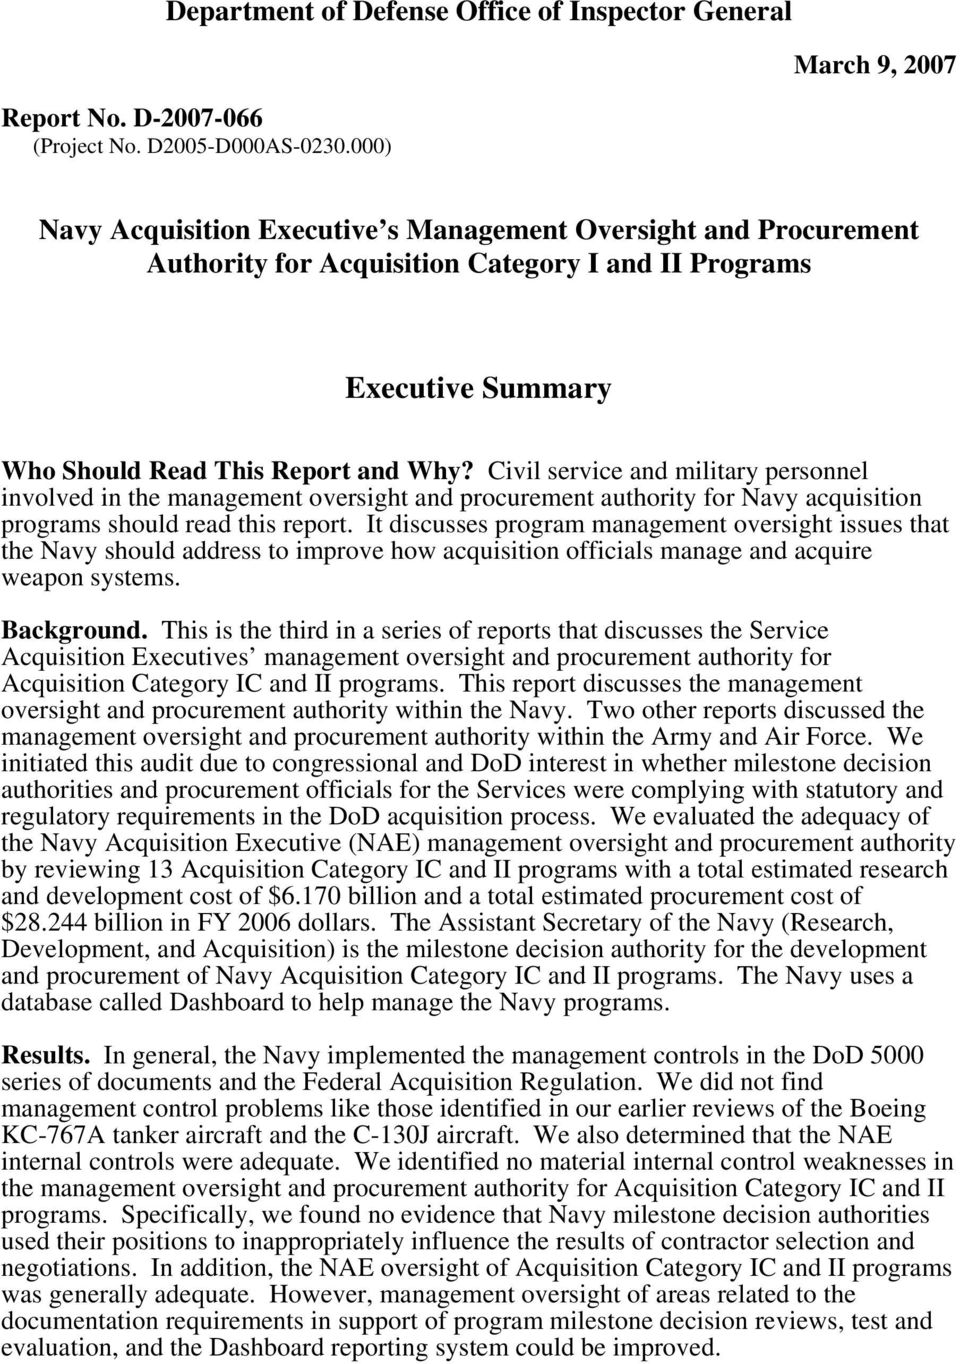 Civil service and military personnel involved in the management oversight and procurement authority for Navy acquisition programs should read this report.